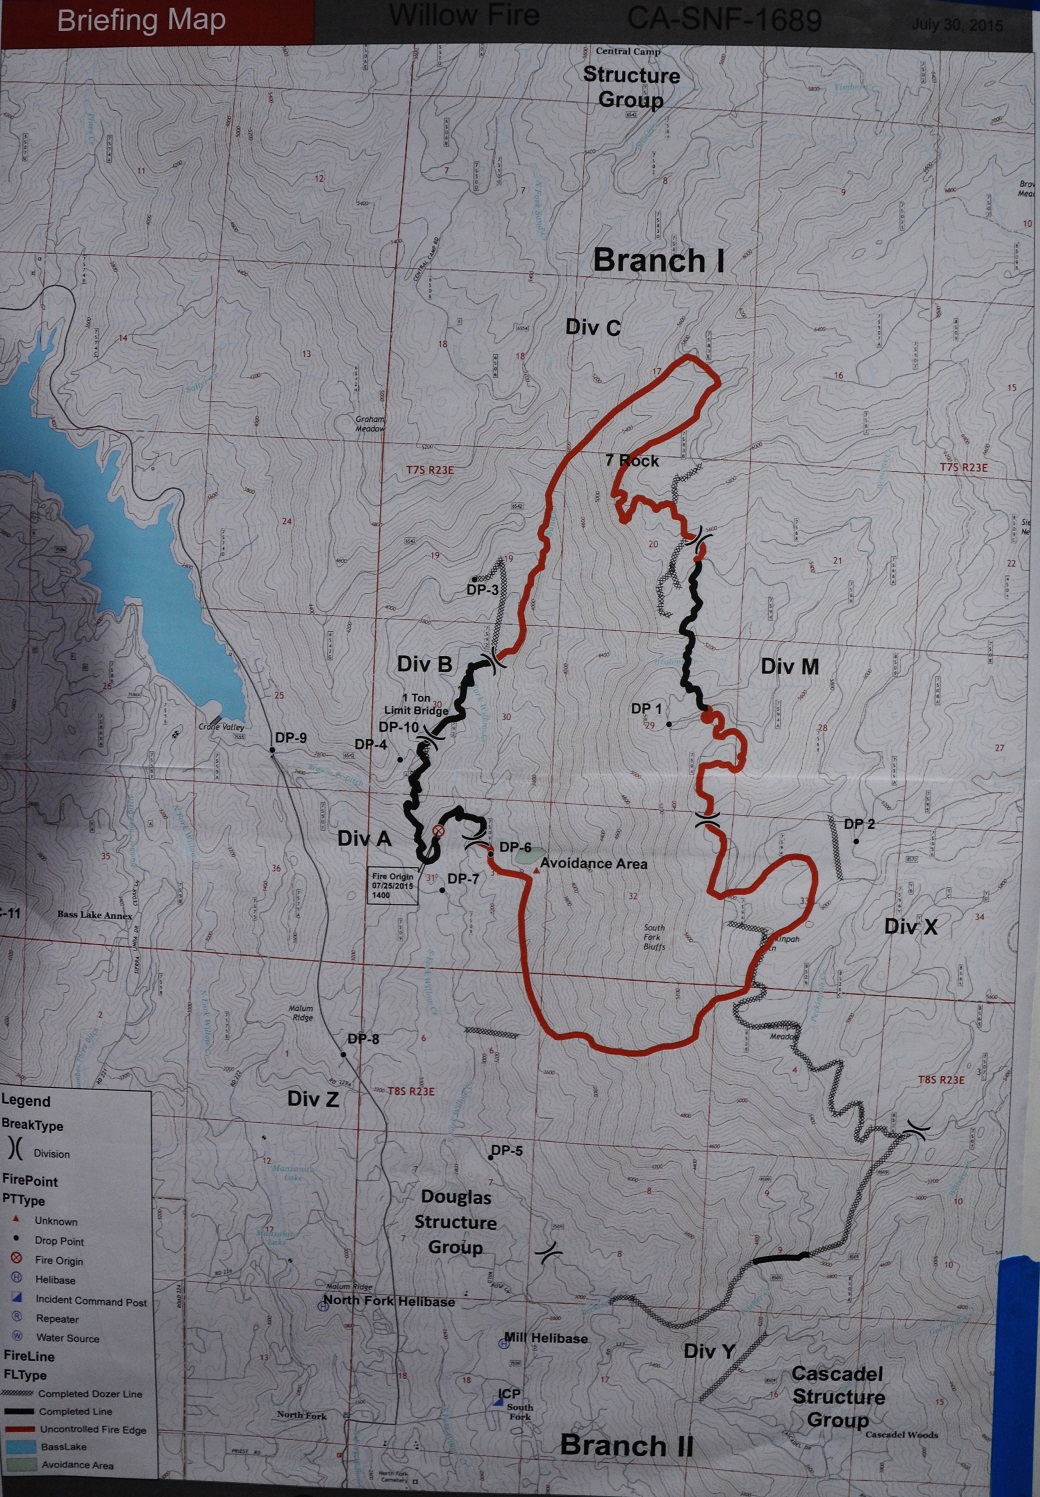 Willow Fire perimeter map 7 30 15 morning briefing |